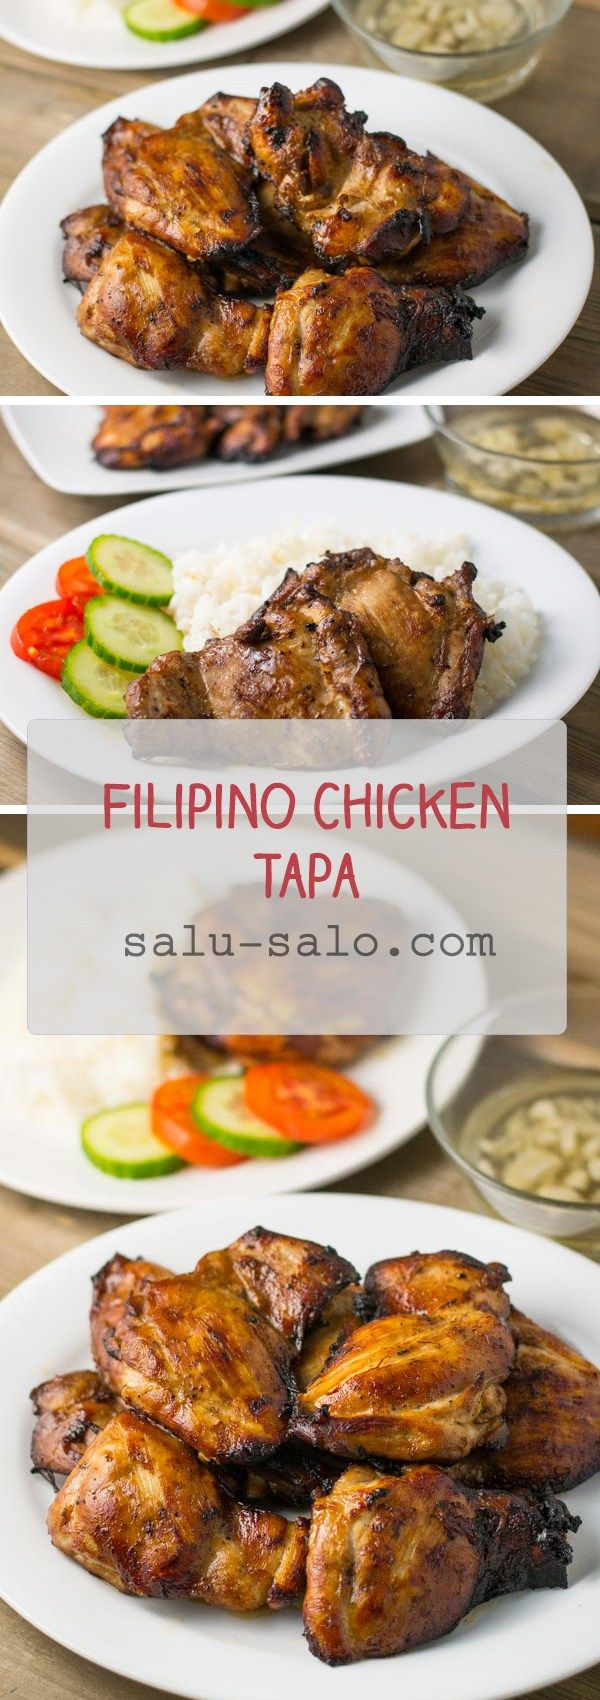 1093 best filipino food images on pinterest filipino food chicken tapa forumfinder Images